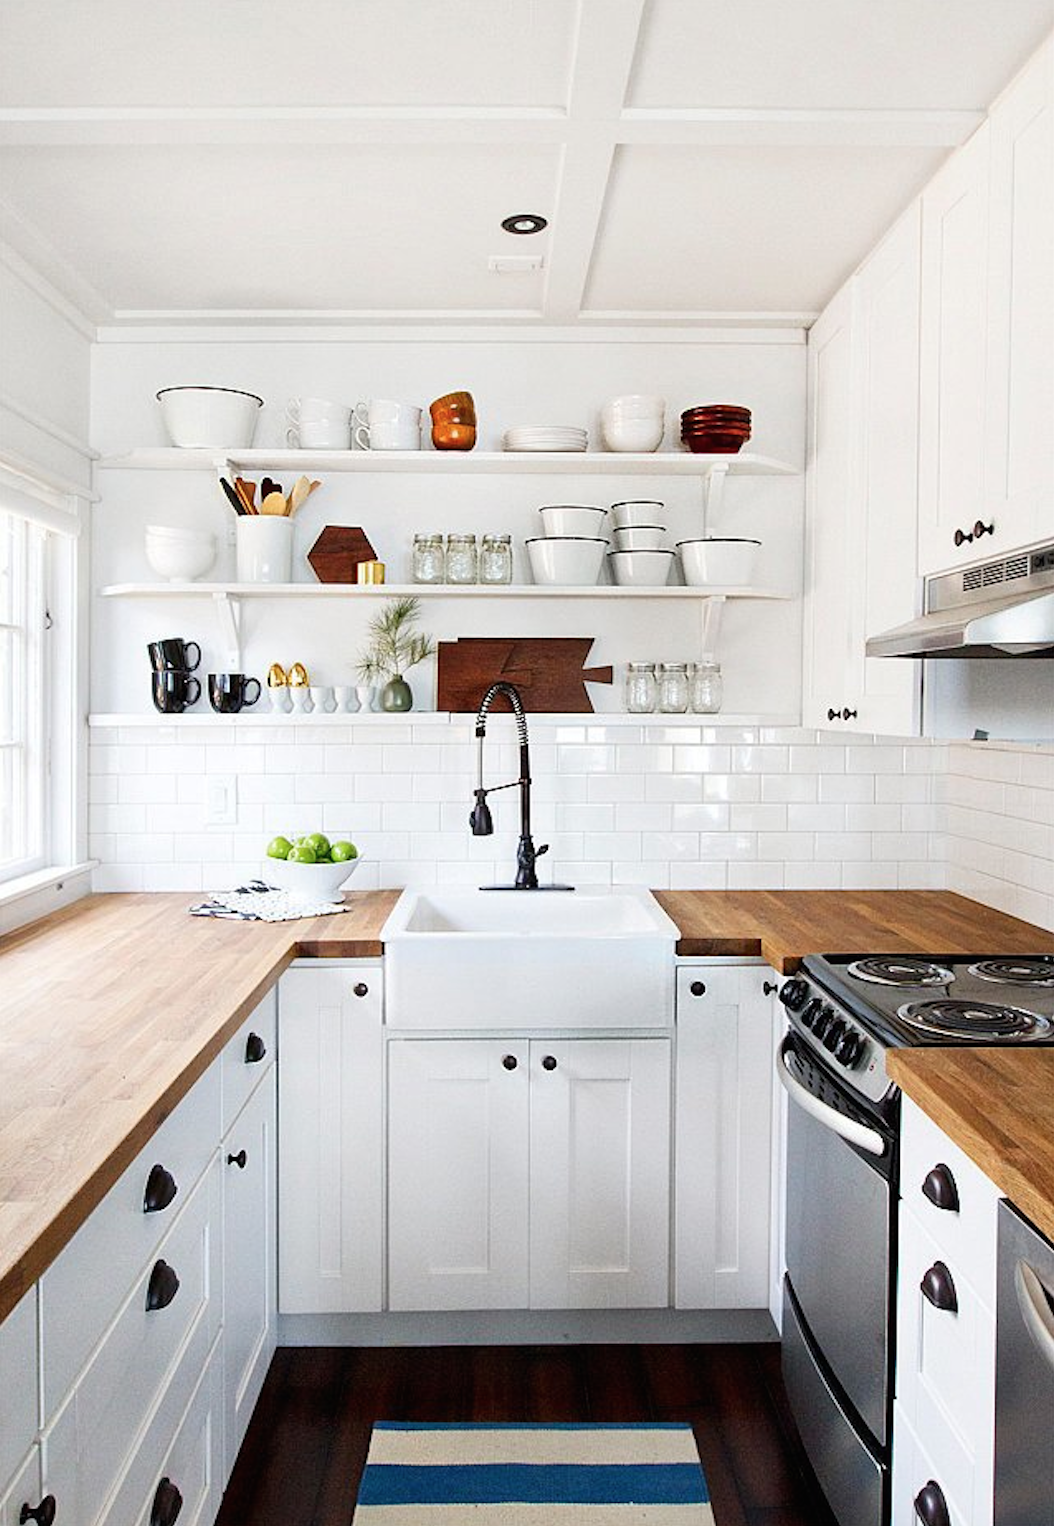 Good Sarah Samuel Smitten Studio Kitchen With Butcher Block Countertops